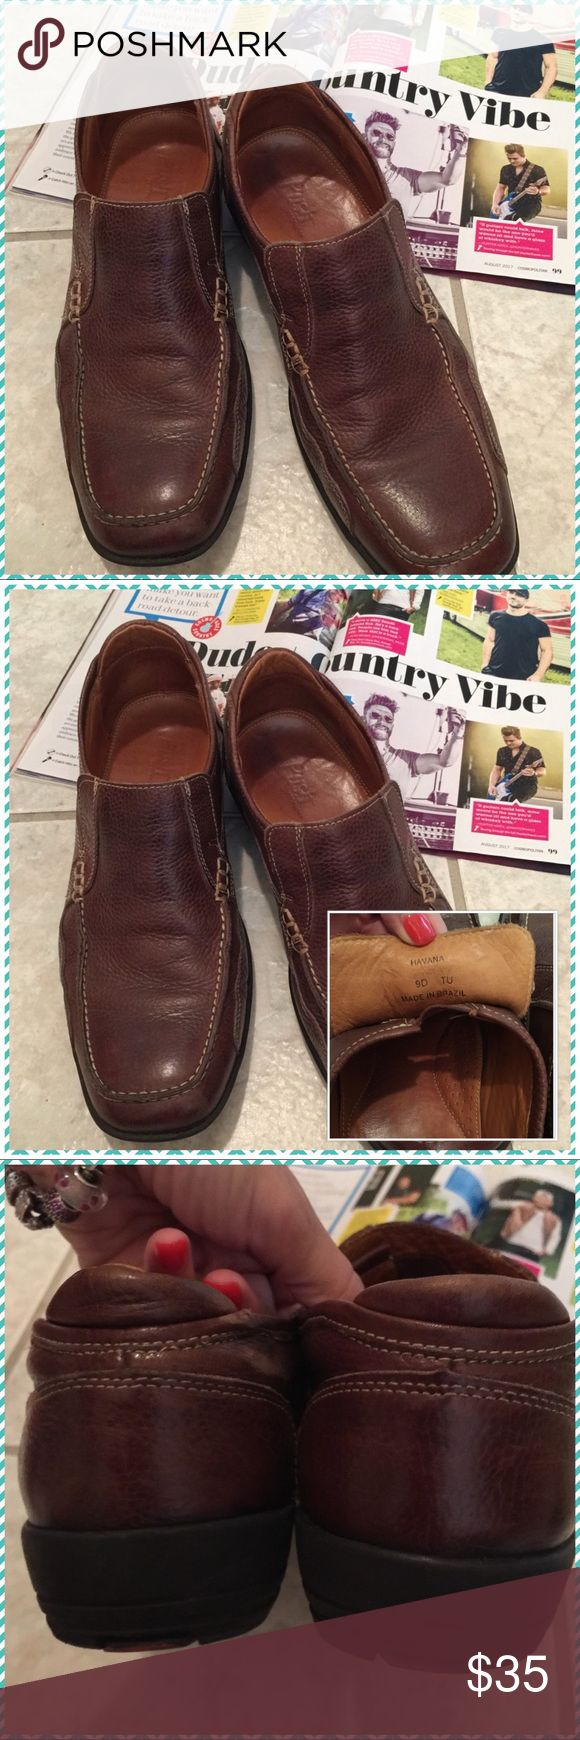 🐾USED IN GOOD CONDITION MEN'S SLIP-ON BOAT SHOES 🐾MEN'S HAVANA SLIP- ON LOAFERS BOAT SHOES. WORN A FEW TIMES IN GOOD CONDITION. Love the shoes but not the price. Feel free to make me an offer.🐾 Havana Shoes Loafers & Slip-Ons